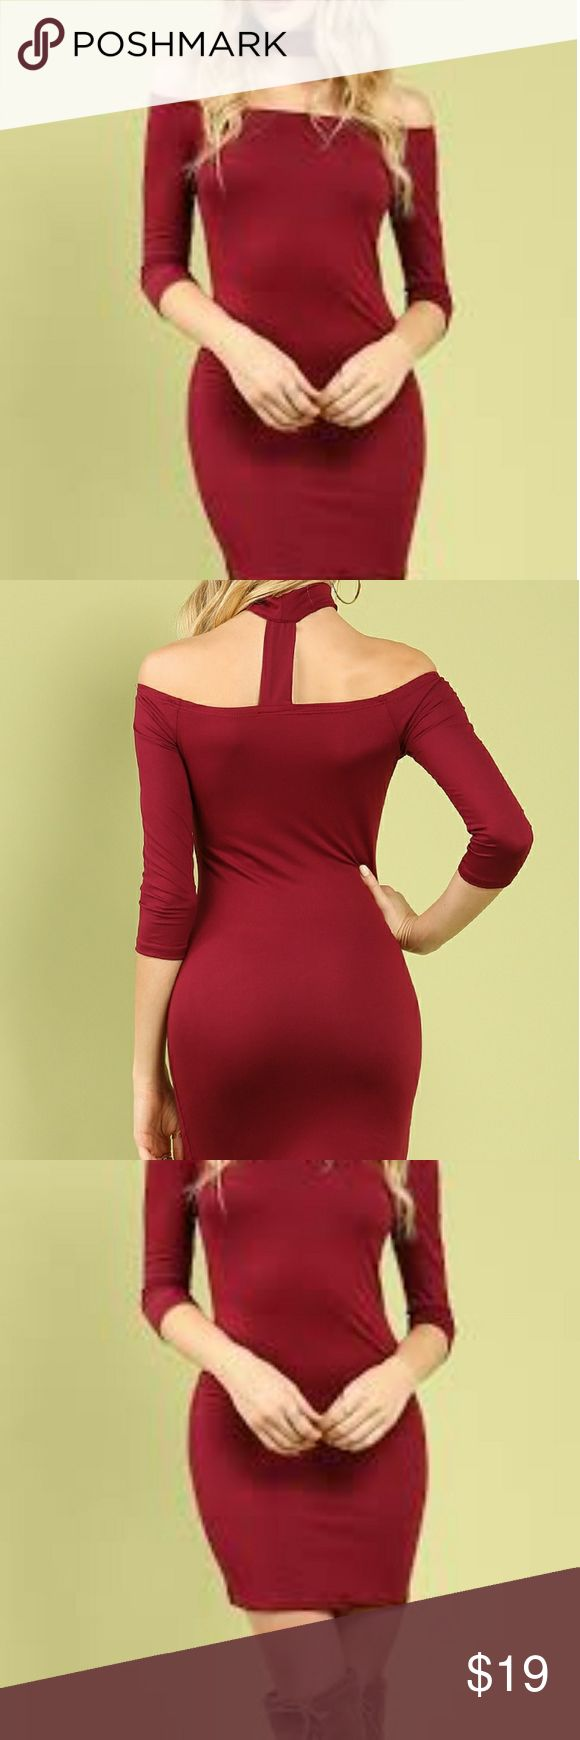 Boohoo off the shoulder choker dress New without tags, Sexy burgundy fitted off the shoulder dress, attached choker, size 2, long sleeves, accepting all reasonable offers, bundle for discounts, JUST IN TIME FOR VALENTINE'S DAY! Boohoo Dresses